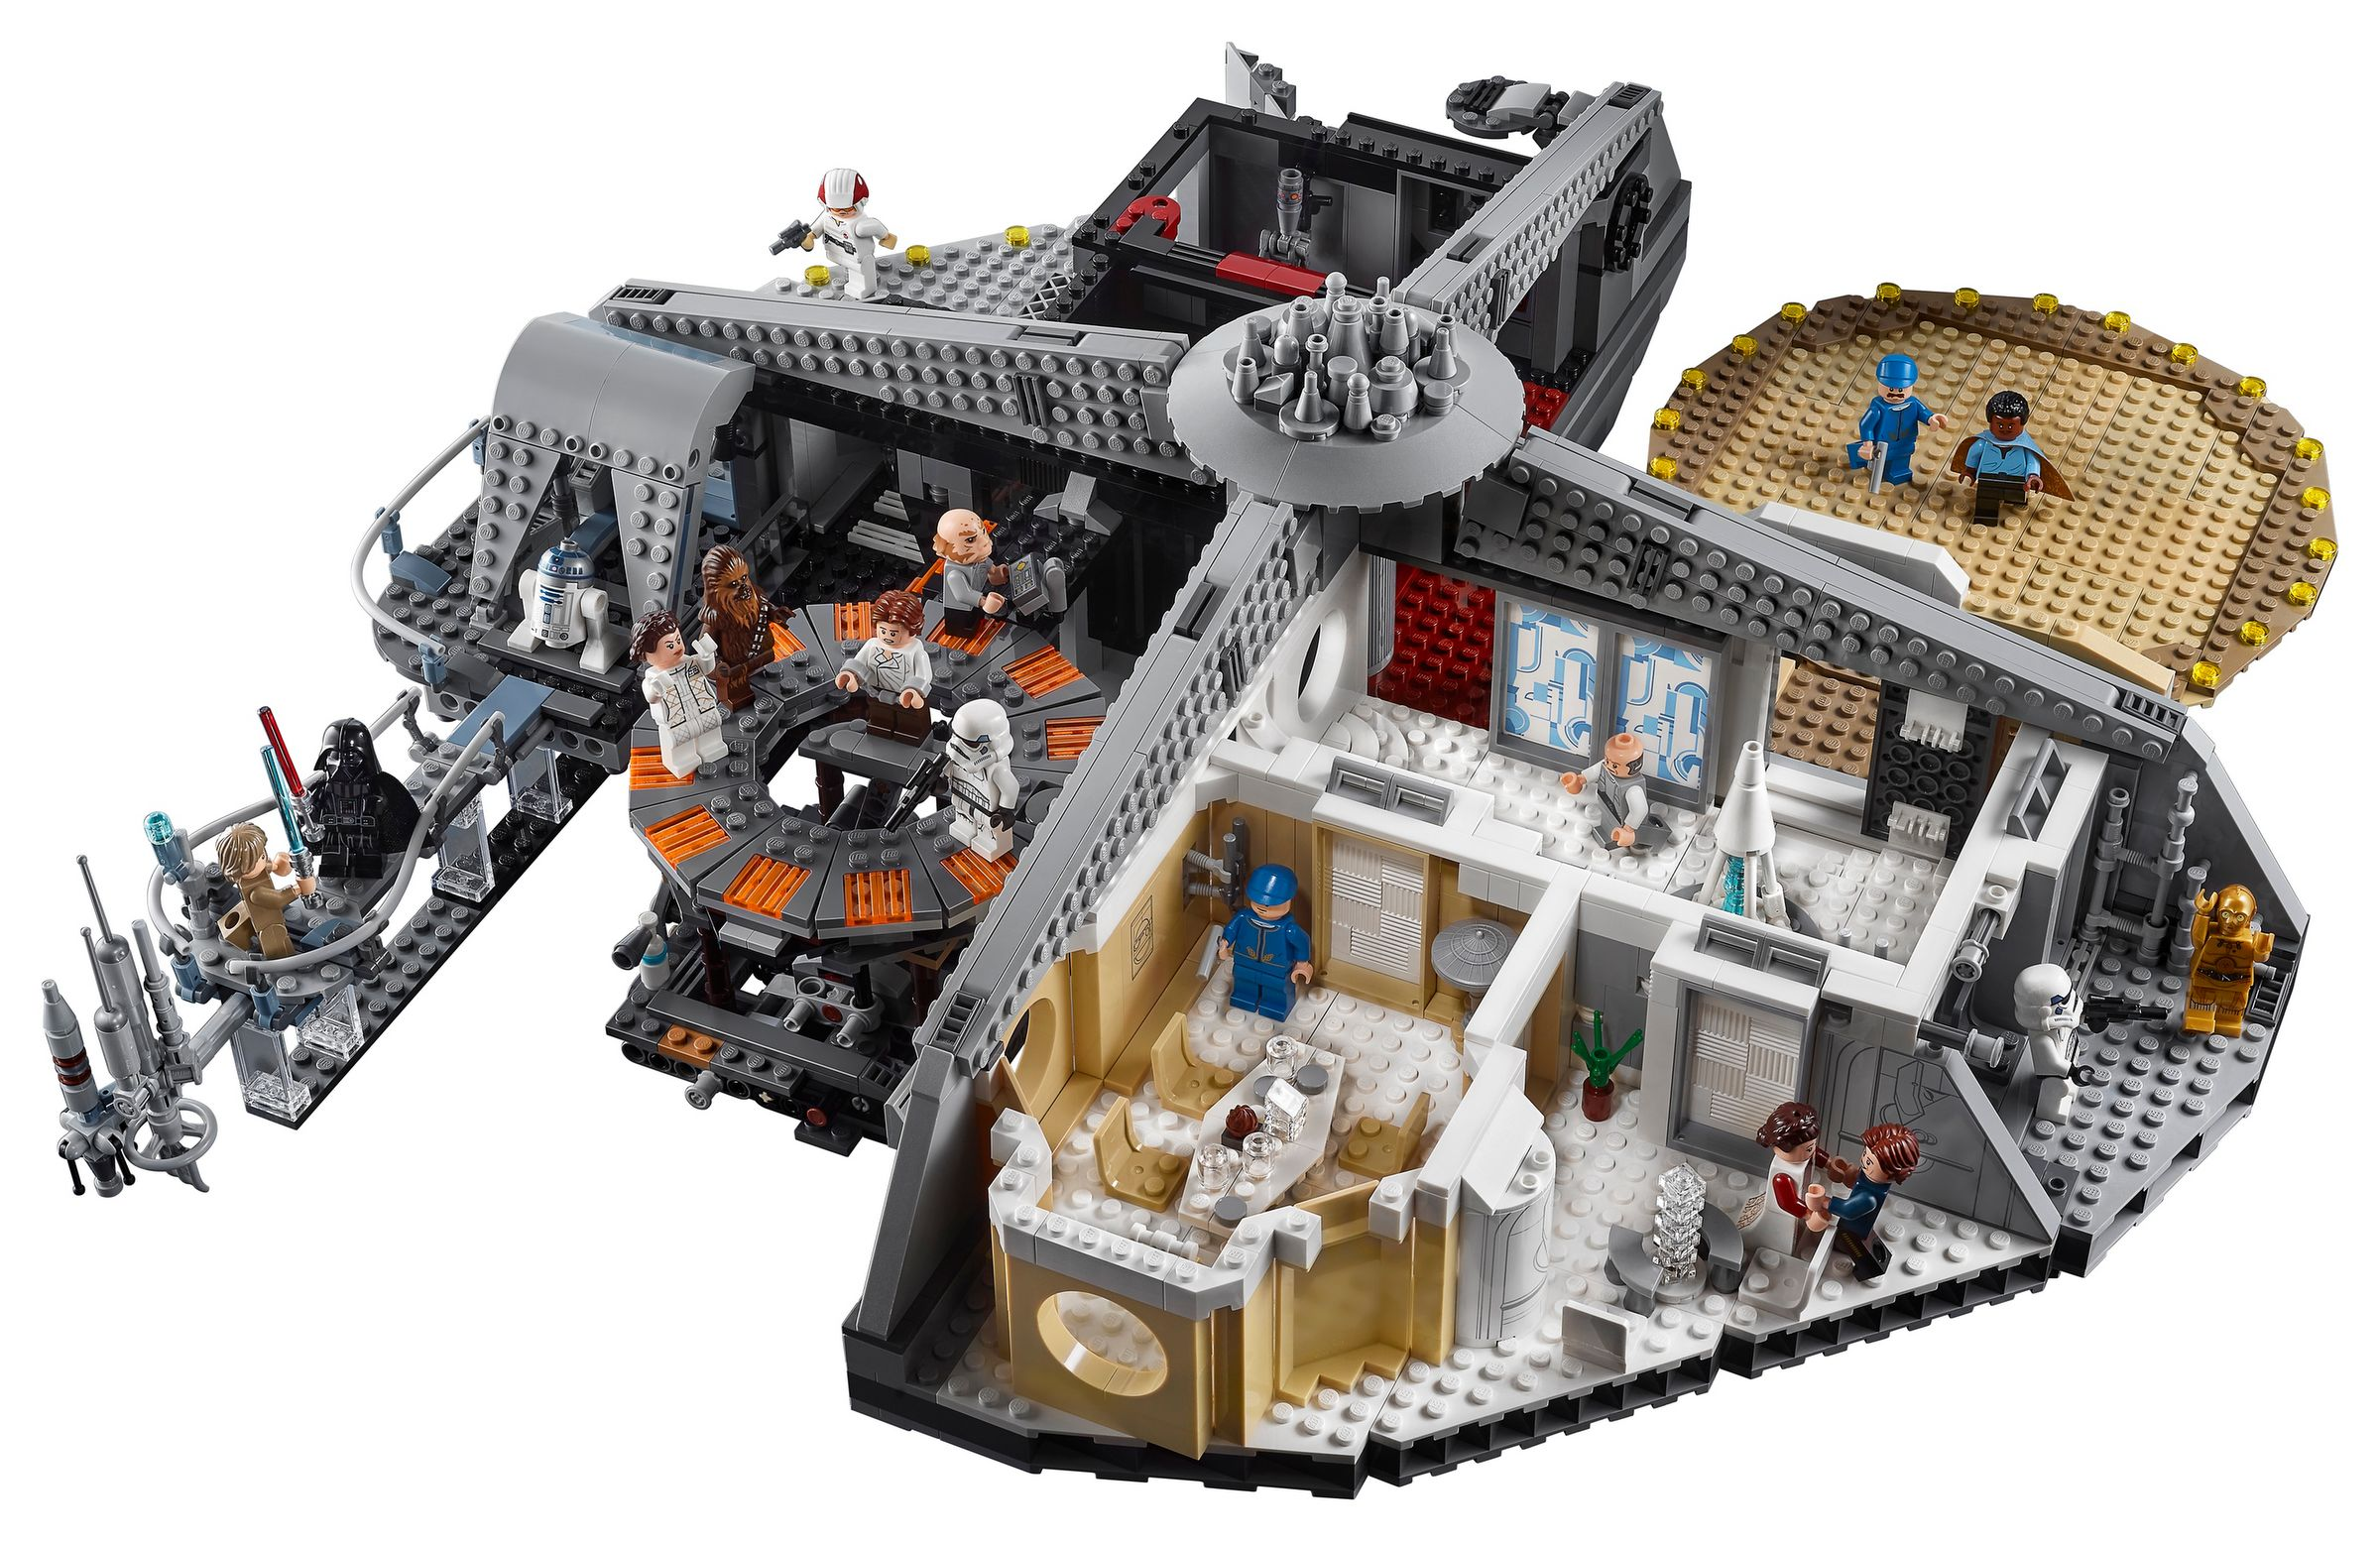 LEGO Star Wars 75222 Verrat in Cloud City™ LEGO_75222_alt2.jpg